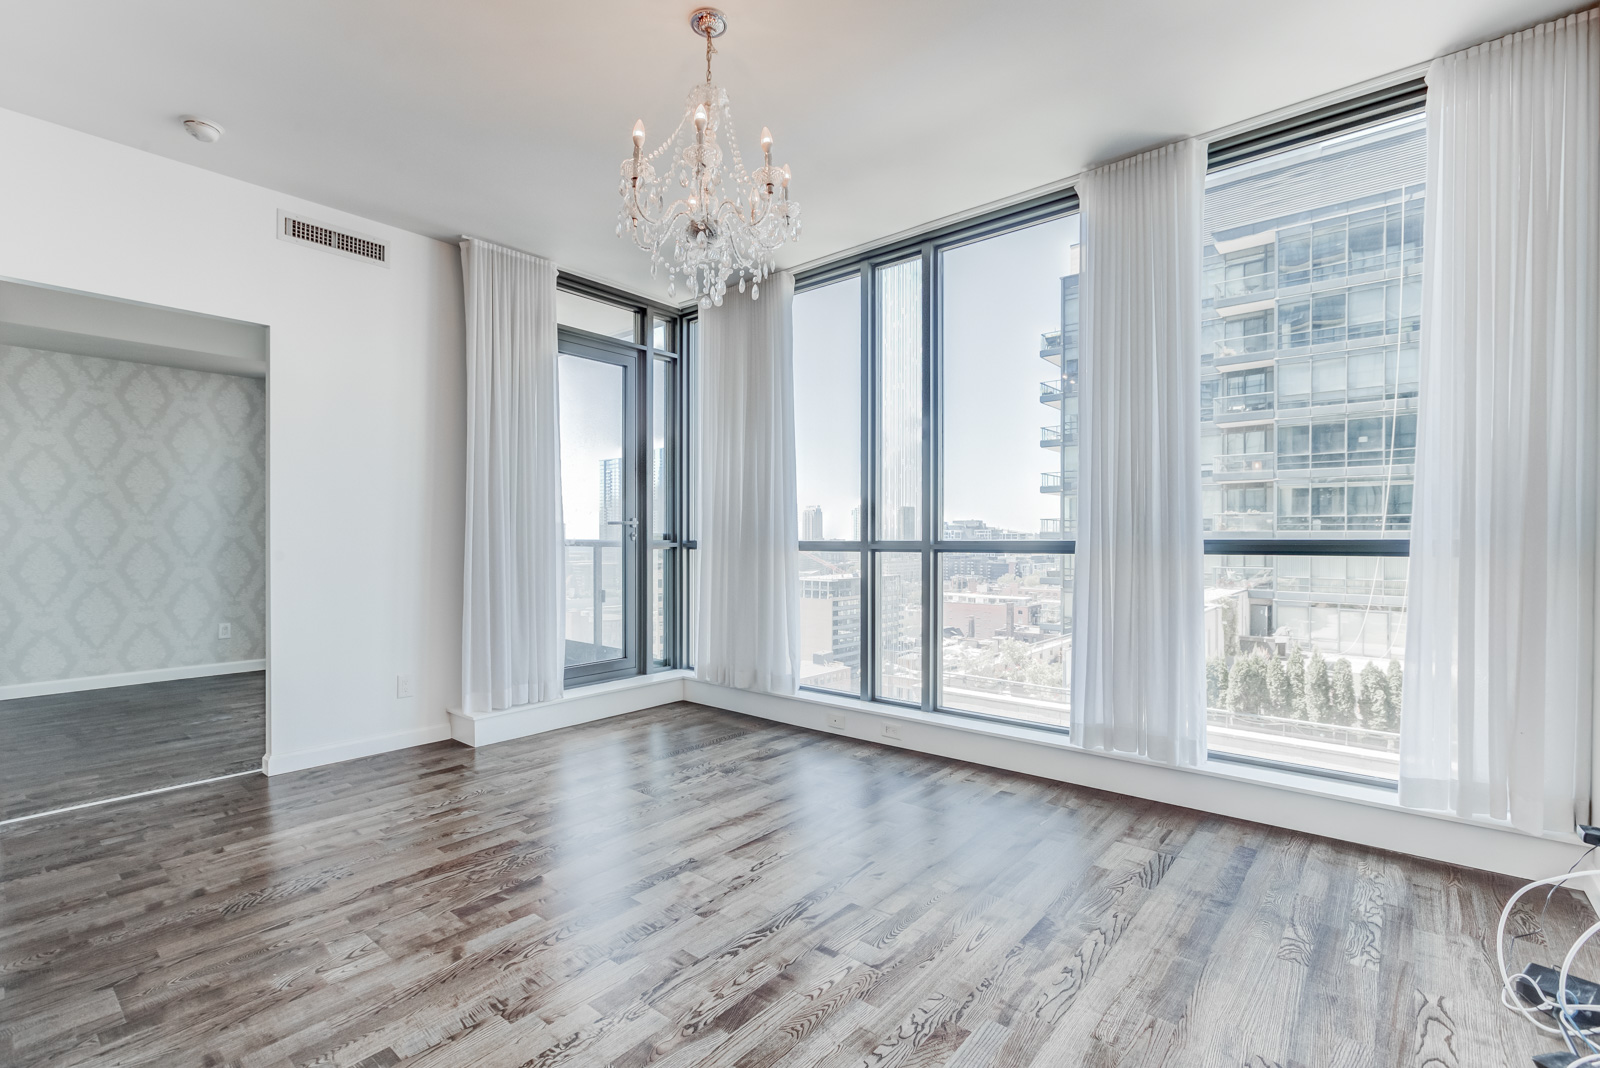 Condo interior with 9-foot ceilings, floor-to-ceiling windows, dark laminate floors, gray walls and chandelier.